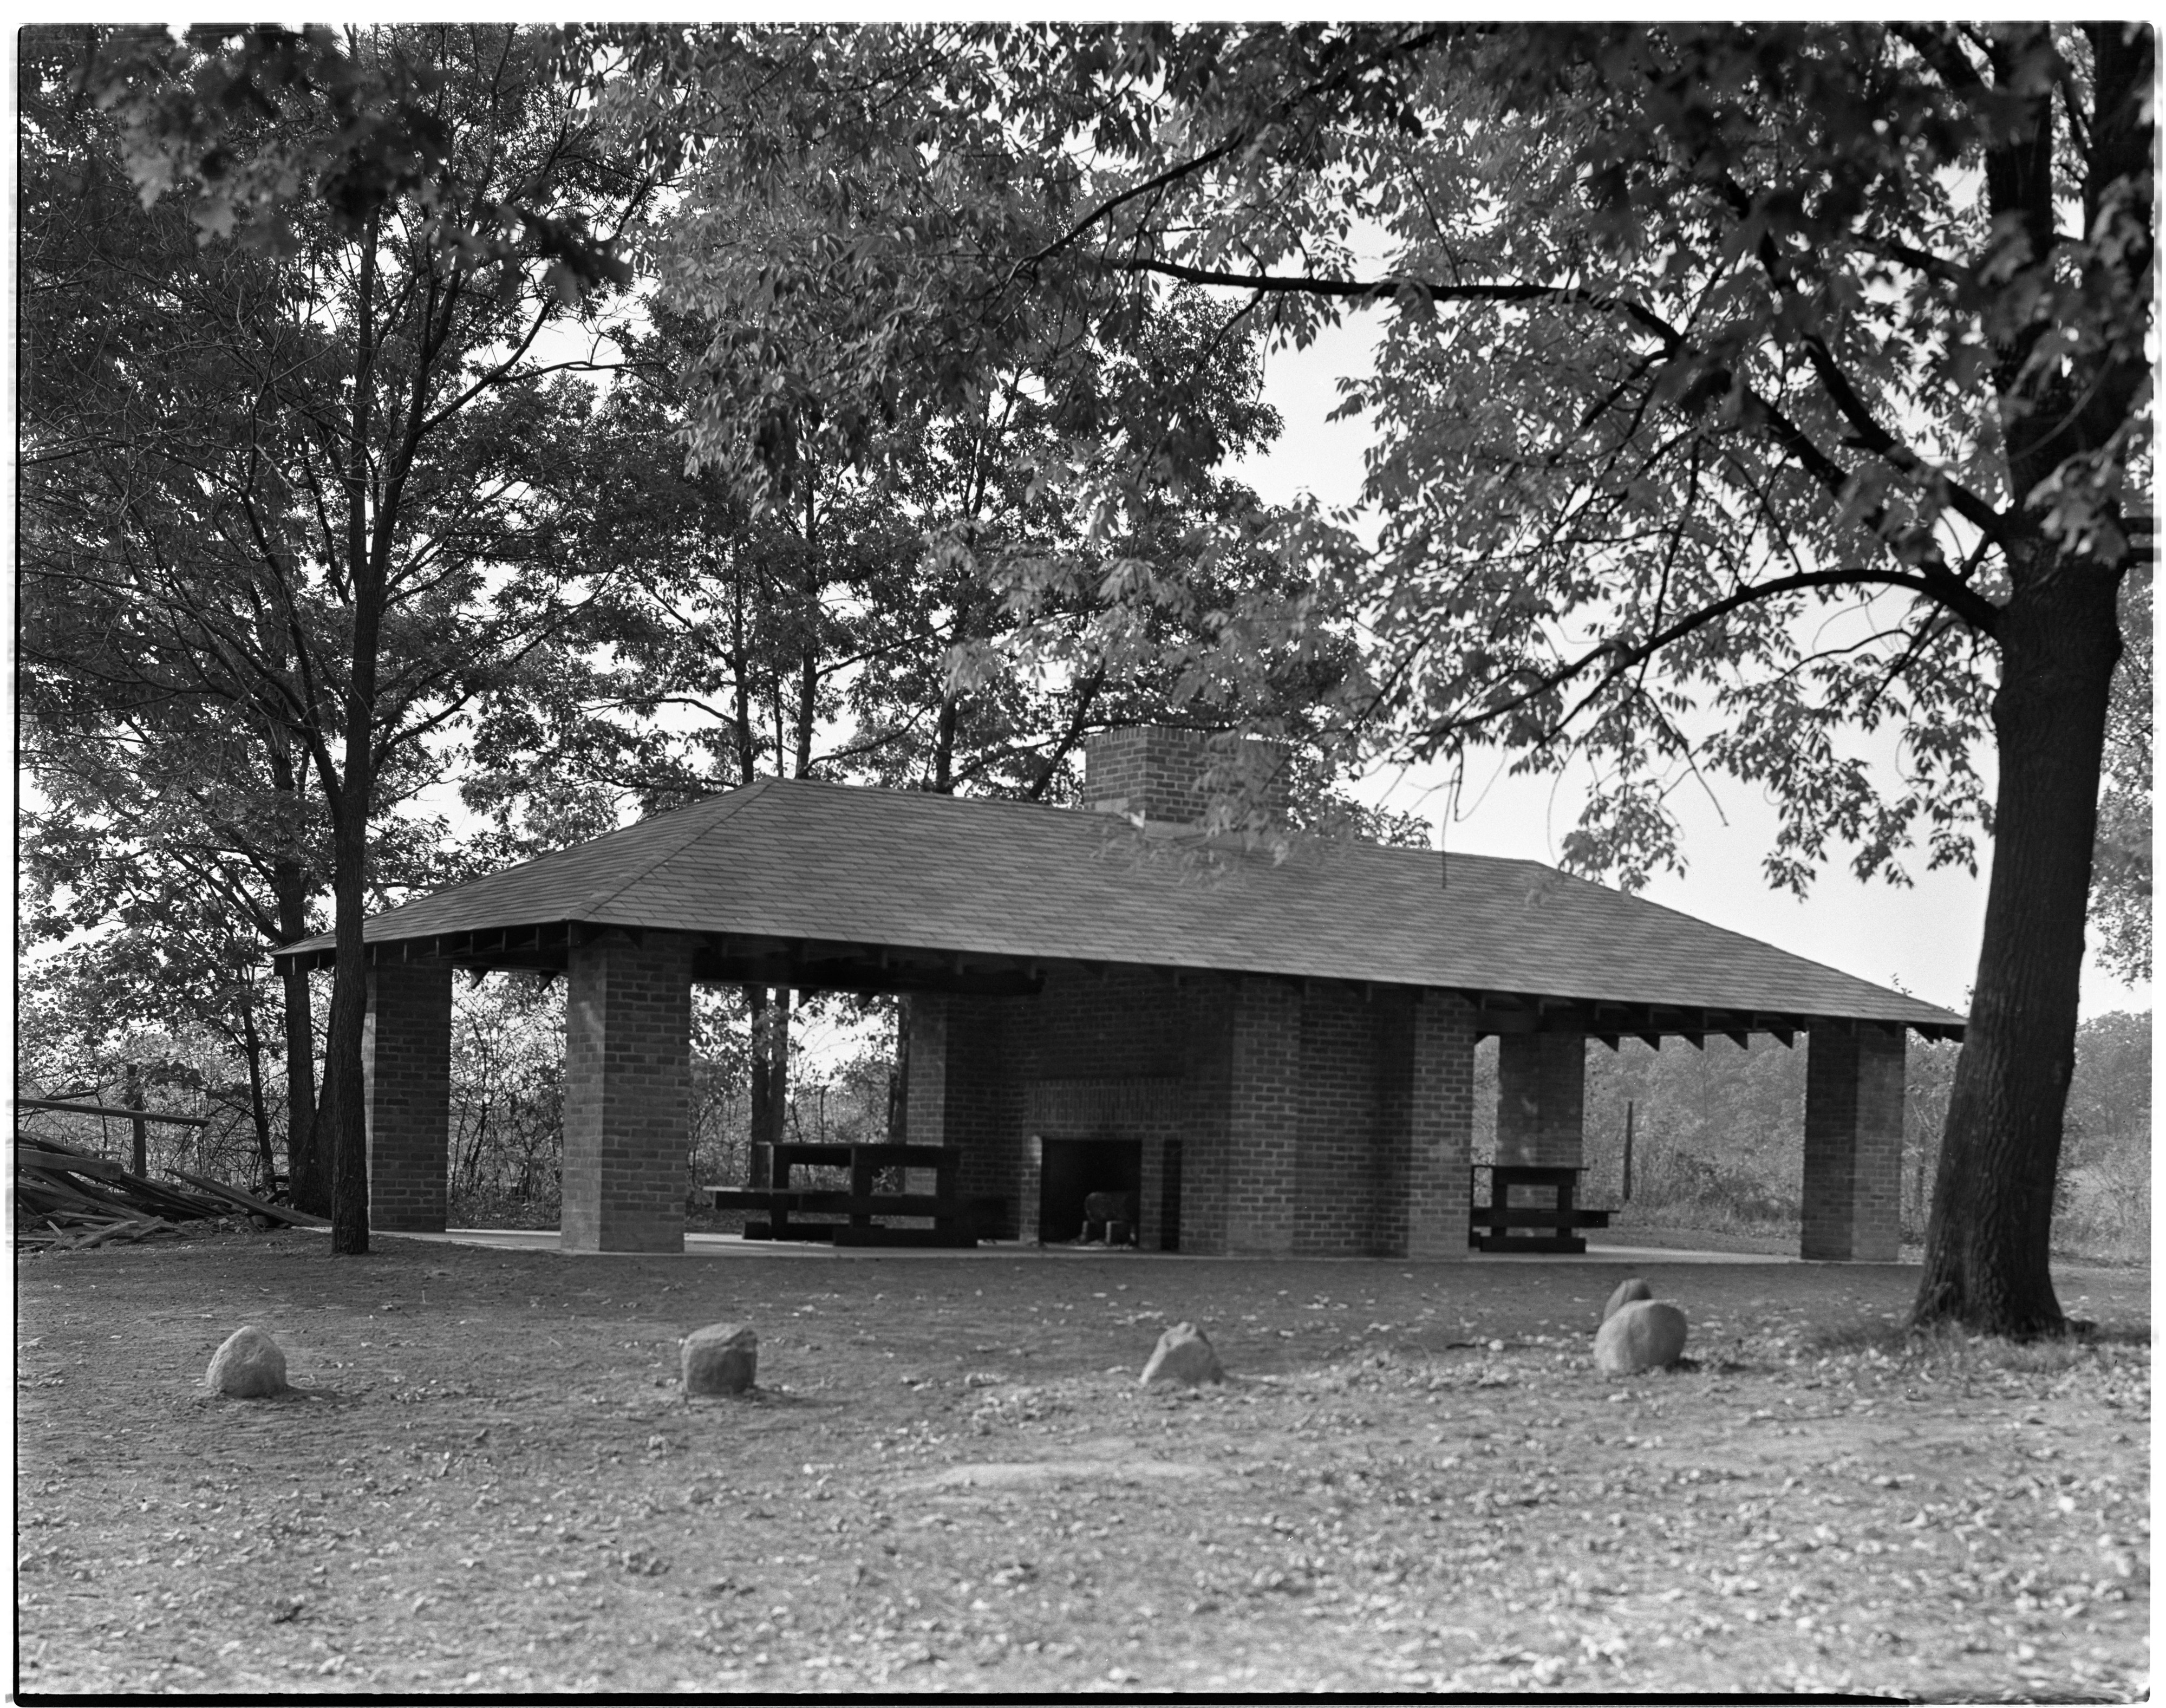 New Picnic Shelter In Fritz Park, October 1938 image